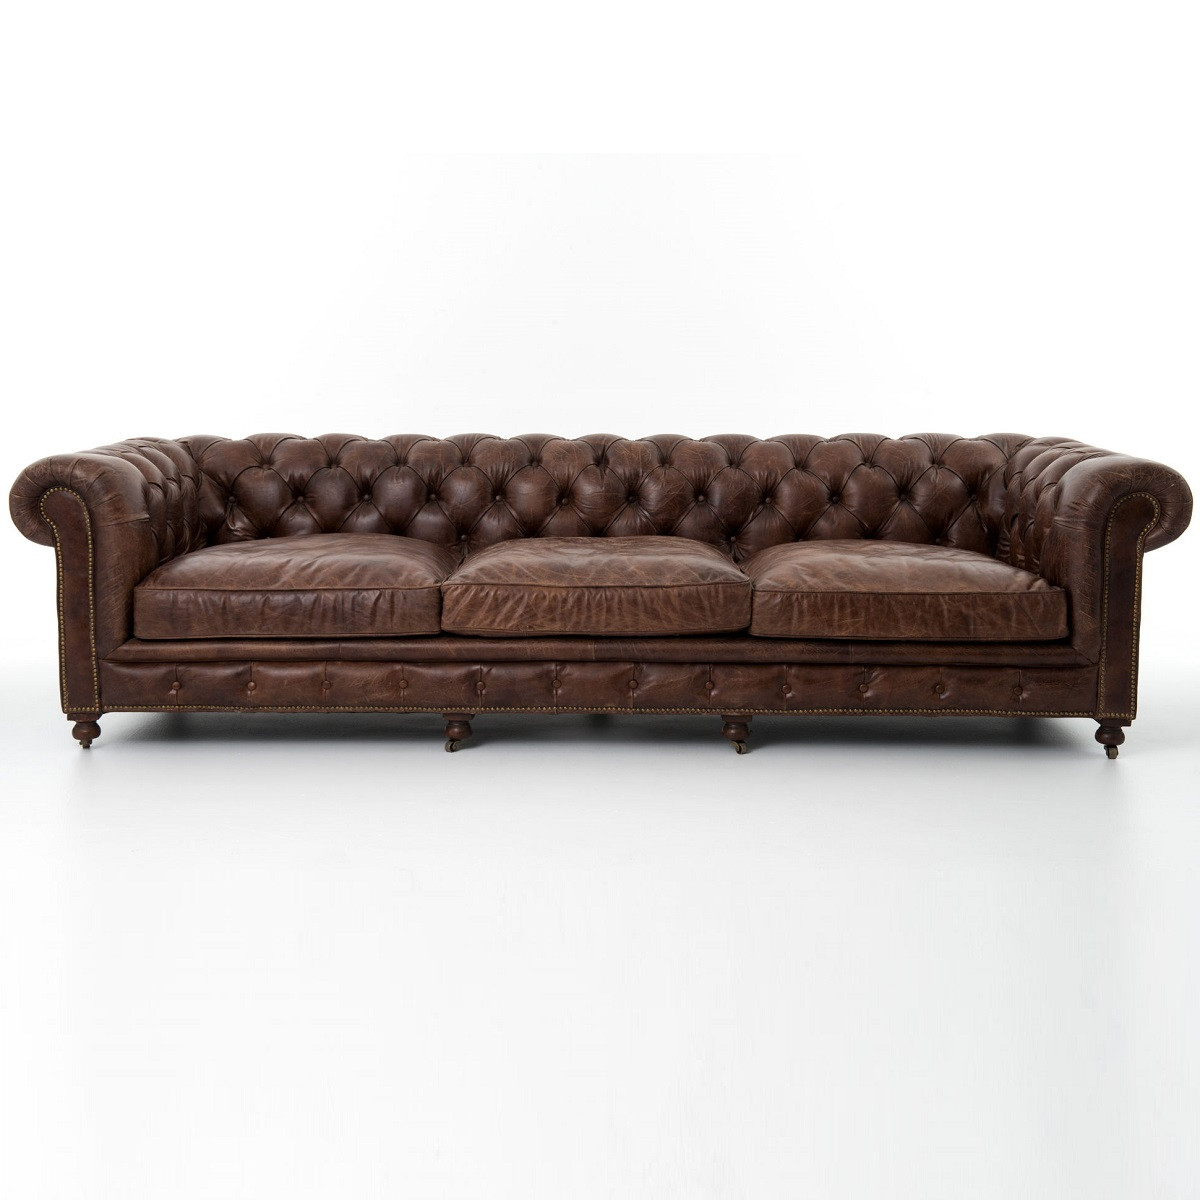 "Vintage Black Leather Chesterfield Sofa: Conrad 118"" Vintage Cigar Leather Chesterfield Sofa"